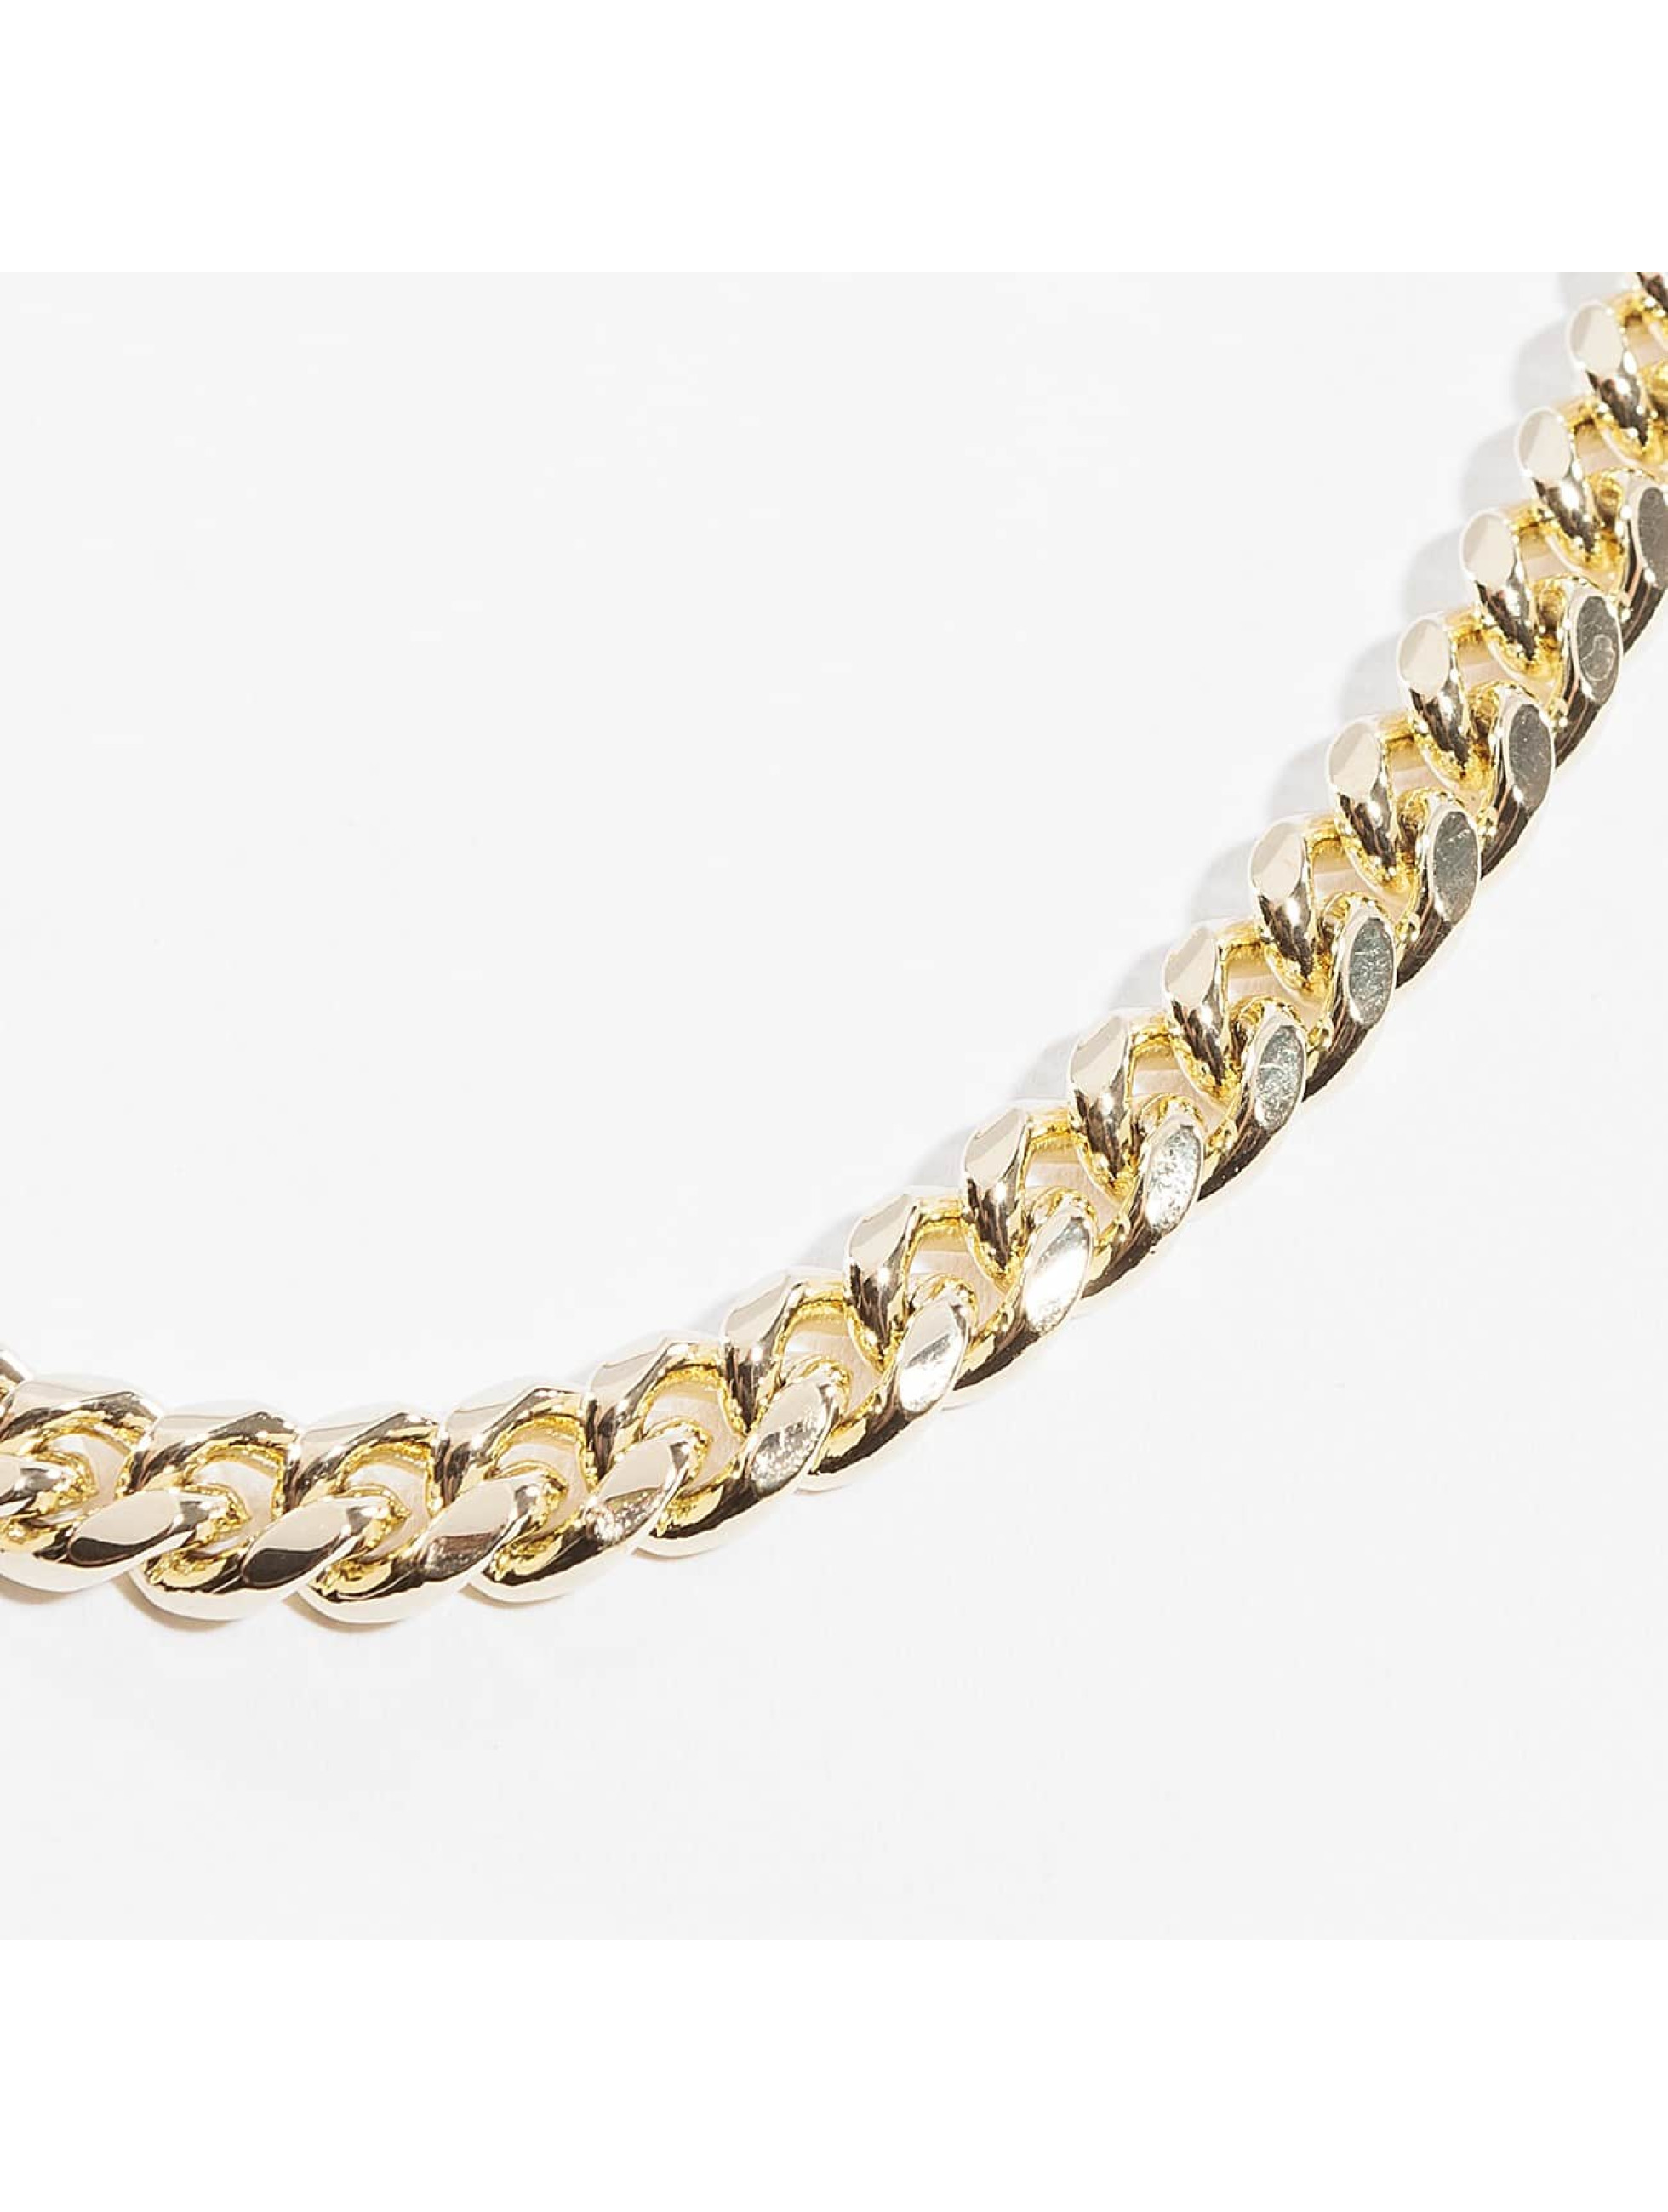 KING ICE Männer,Frauen Kette Miami Cuban Curb Chains in goldfarben